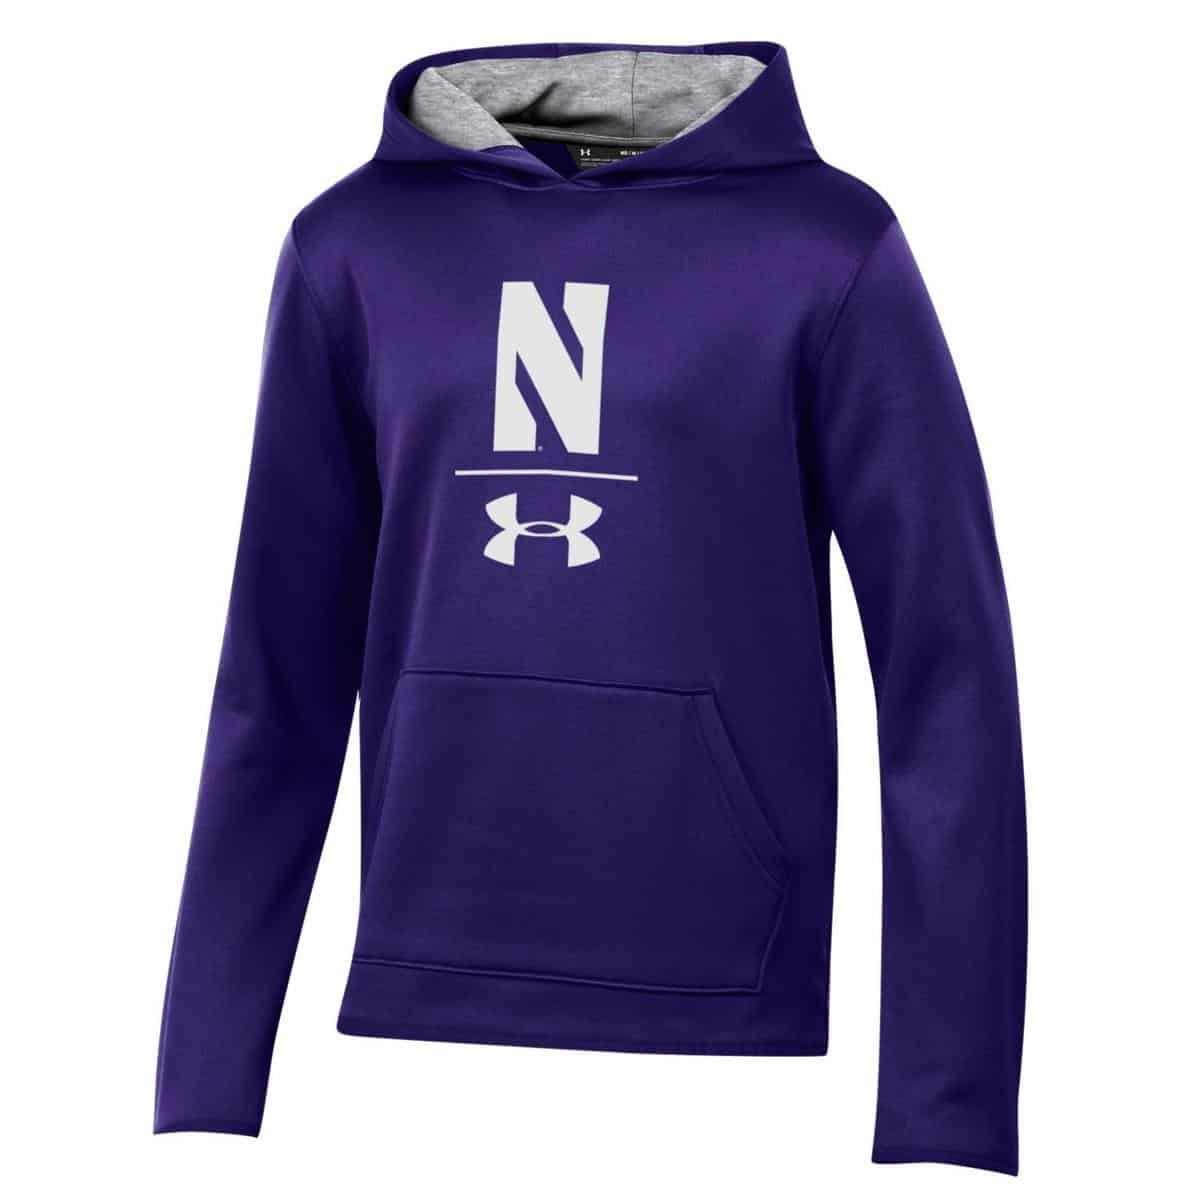 a5fda34ec Northwestern University Wildcats Youth Under Armour Tactical Tech™ Purple Hooded  Sweatshirt with Stylized N Design